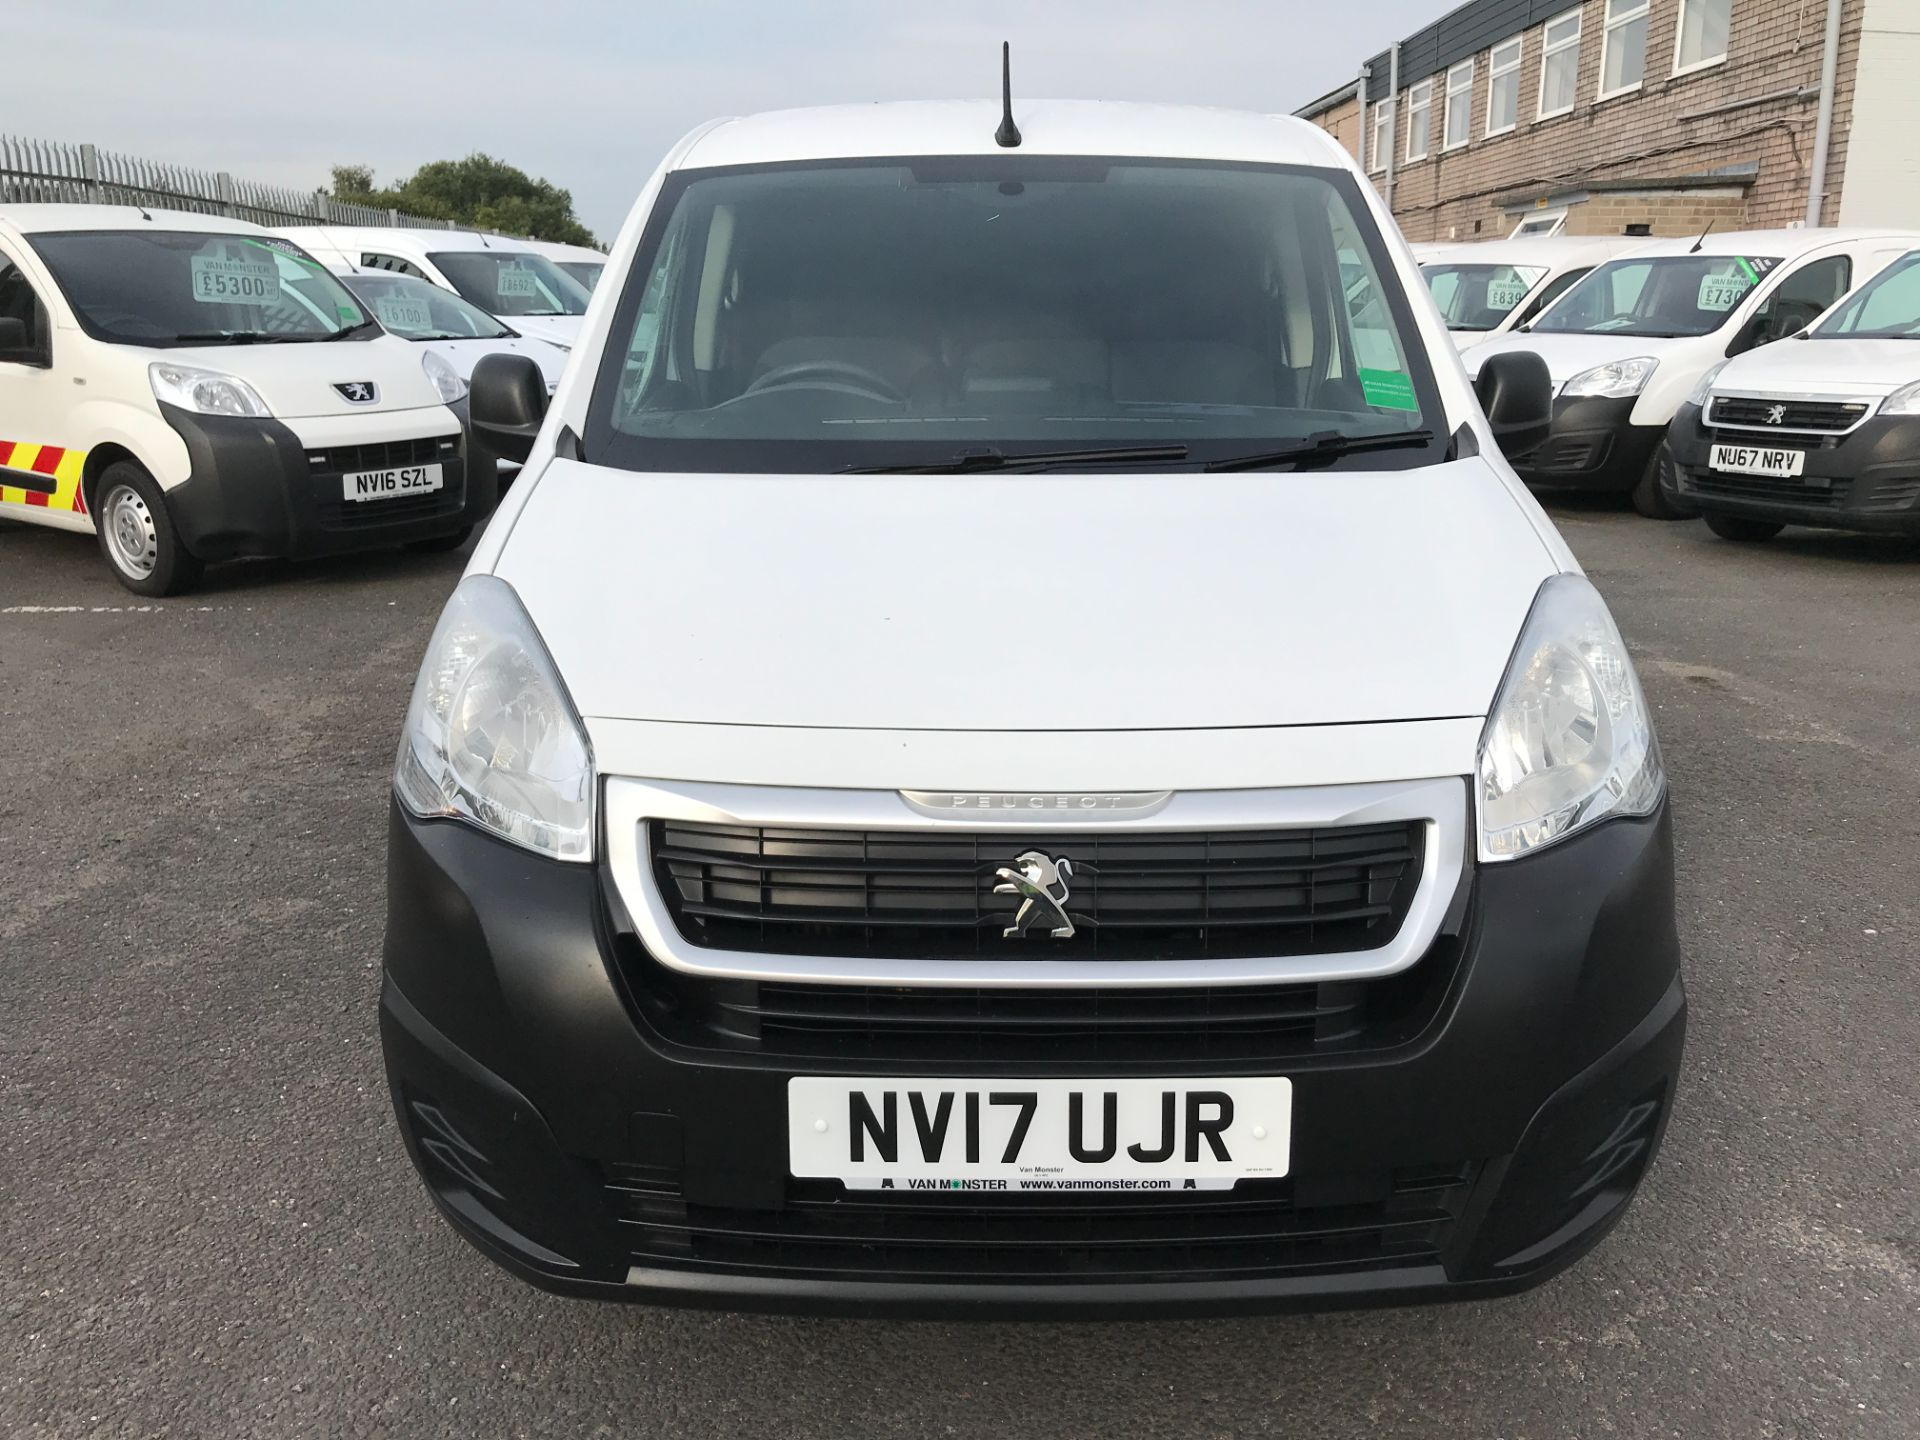 2017 Peugeot Partner L1 850 1.6BLUEHDI 100PS PROFESSIONAL EURO 6 (NV17UJR) Image 14